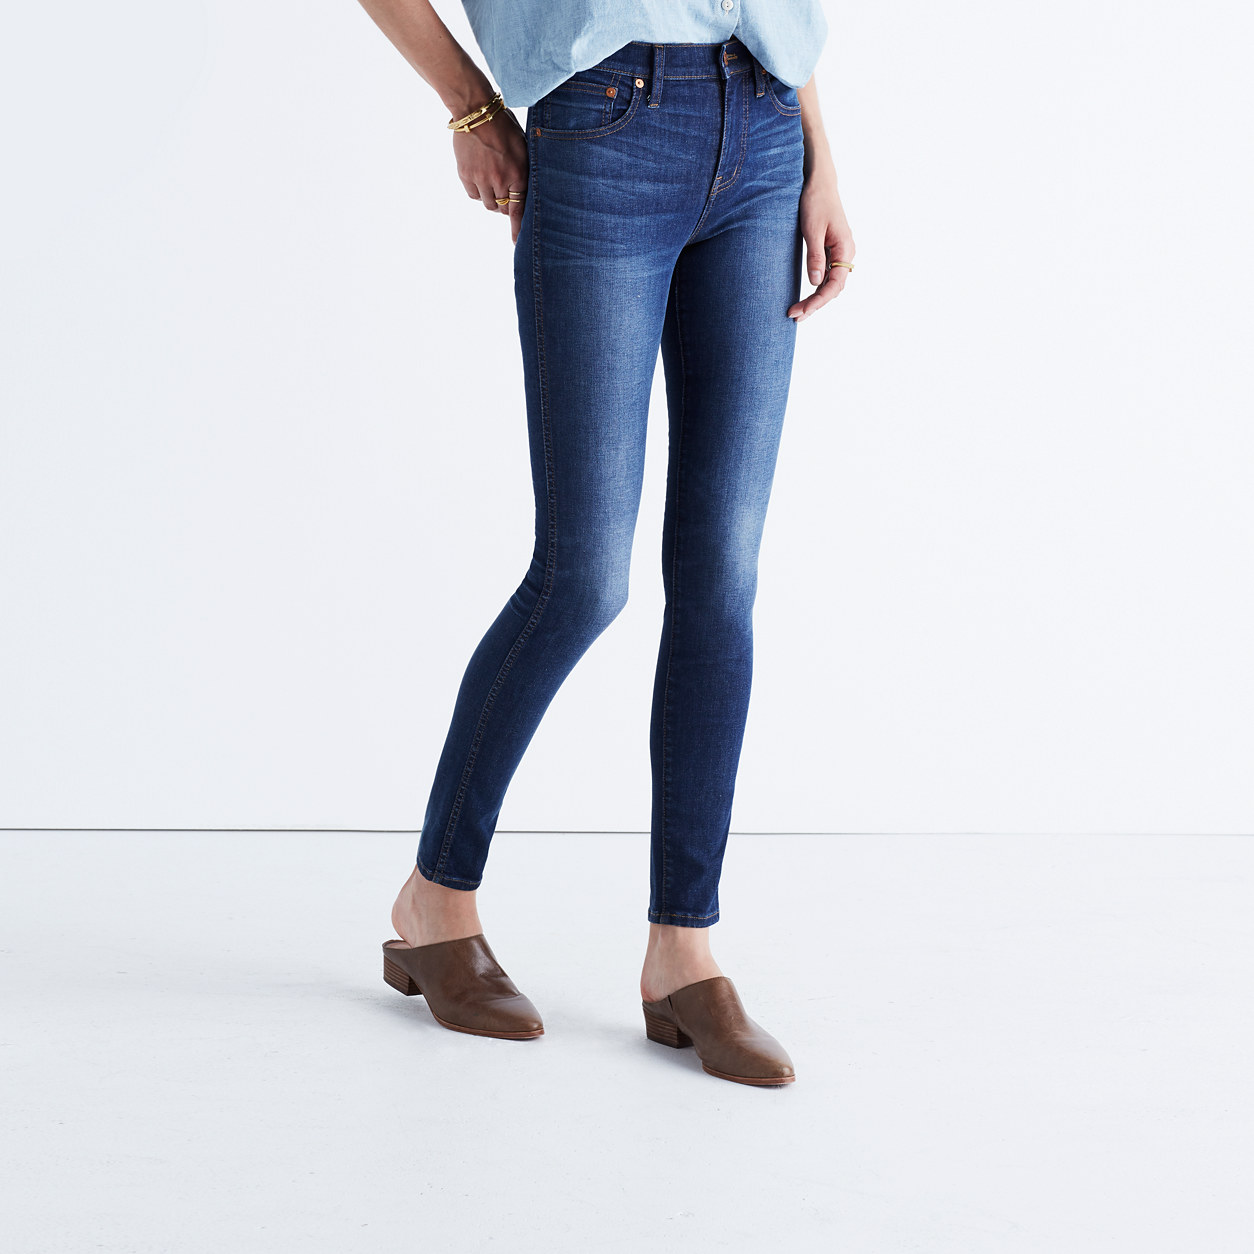 The Petite Girl's Guide to Buying Jeans